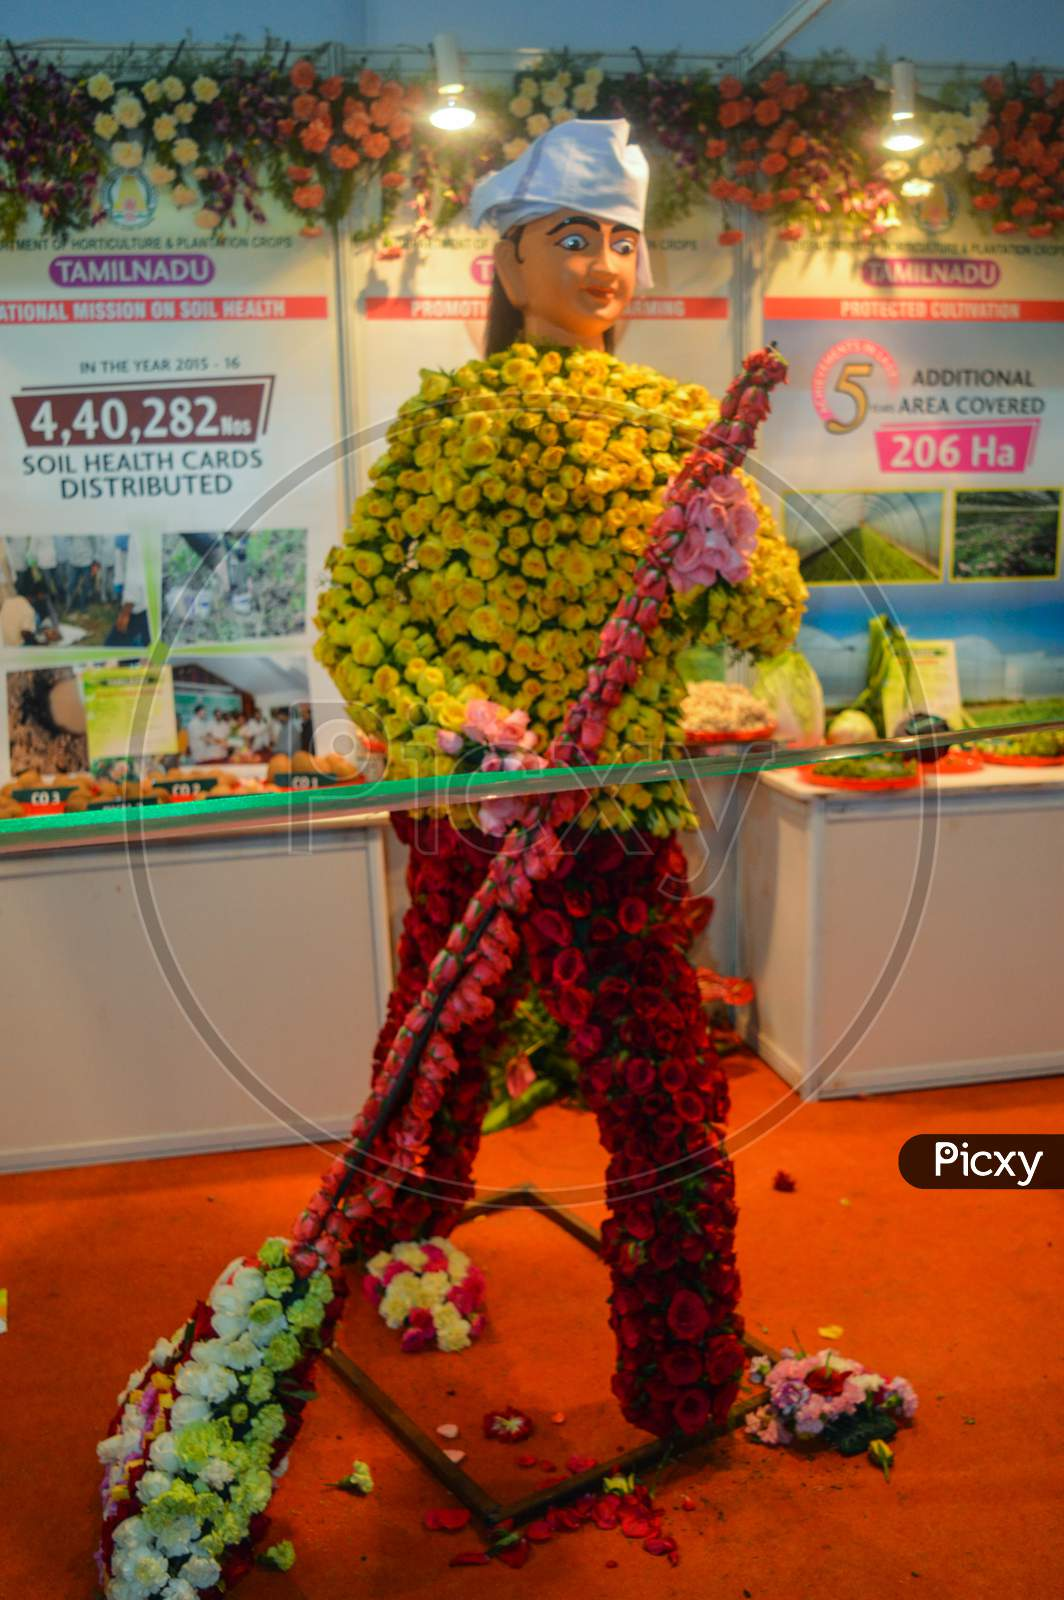 The Cleaning Man Which Is Made Of Cotton And News Paper, Flowers Are There For Exhibition At Pusa, Agriculture Festival, New Delhi.